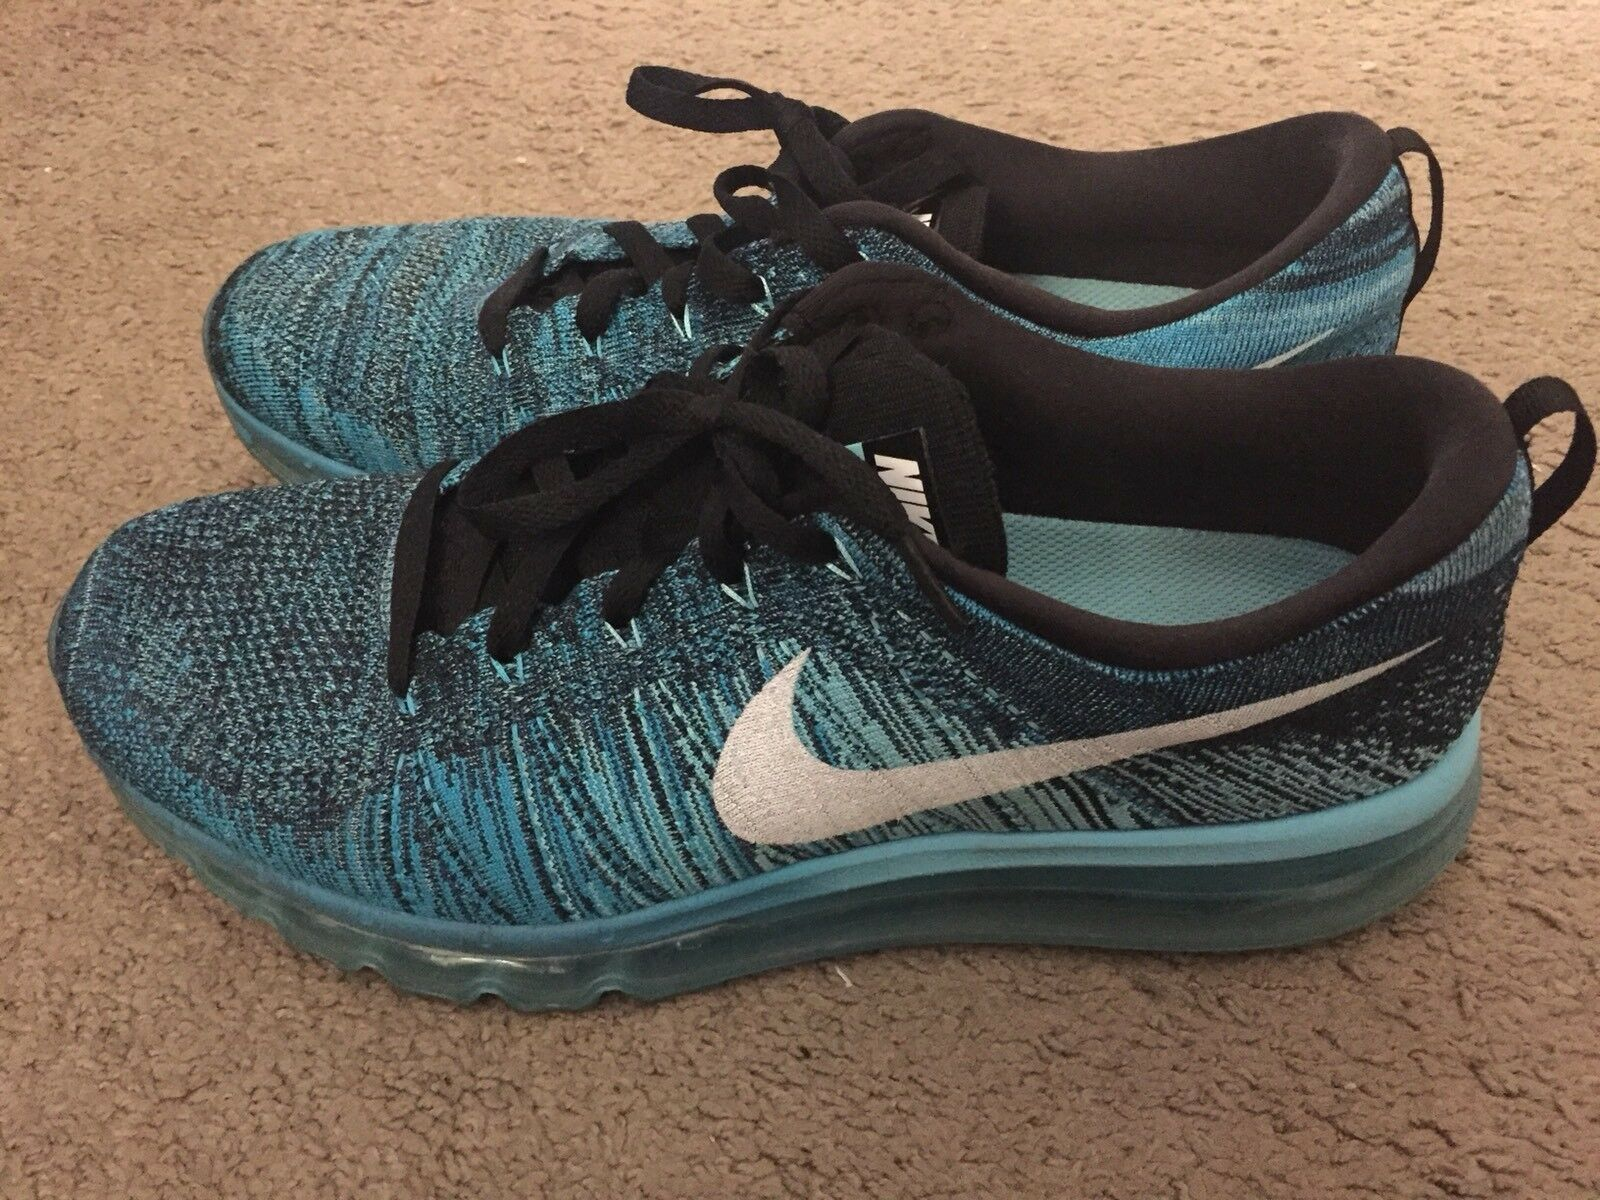 Nike Flyknit Air Max Black/Tide Pool Blue 2018 Comfortable Great discount